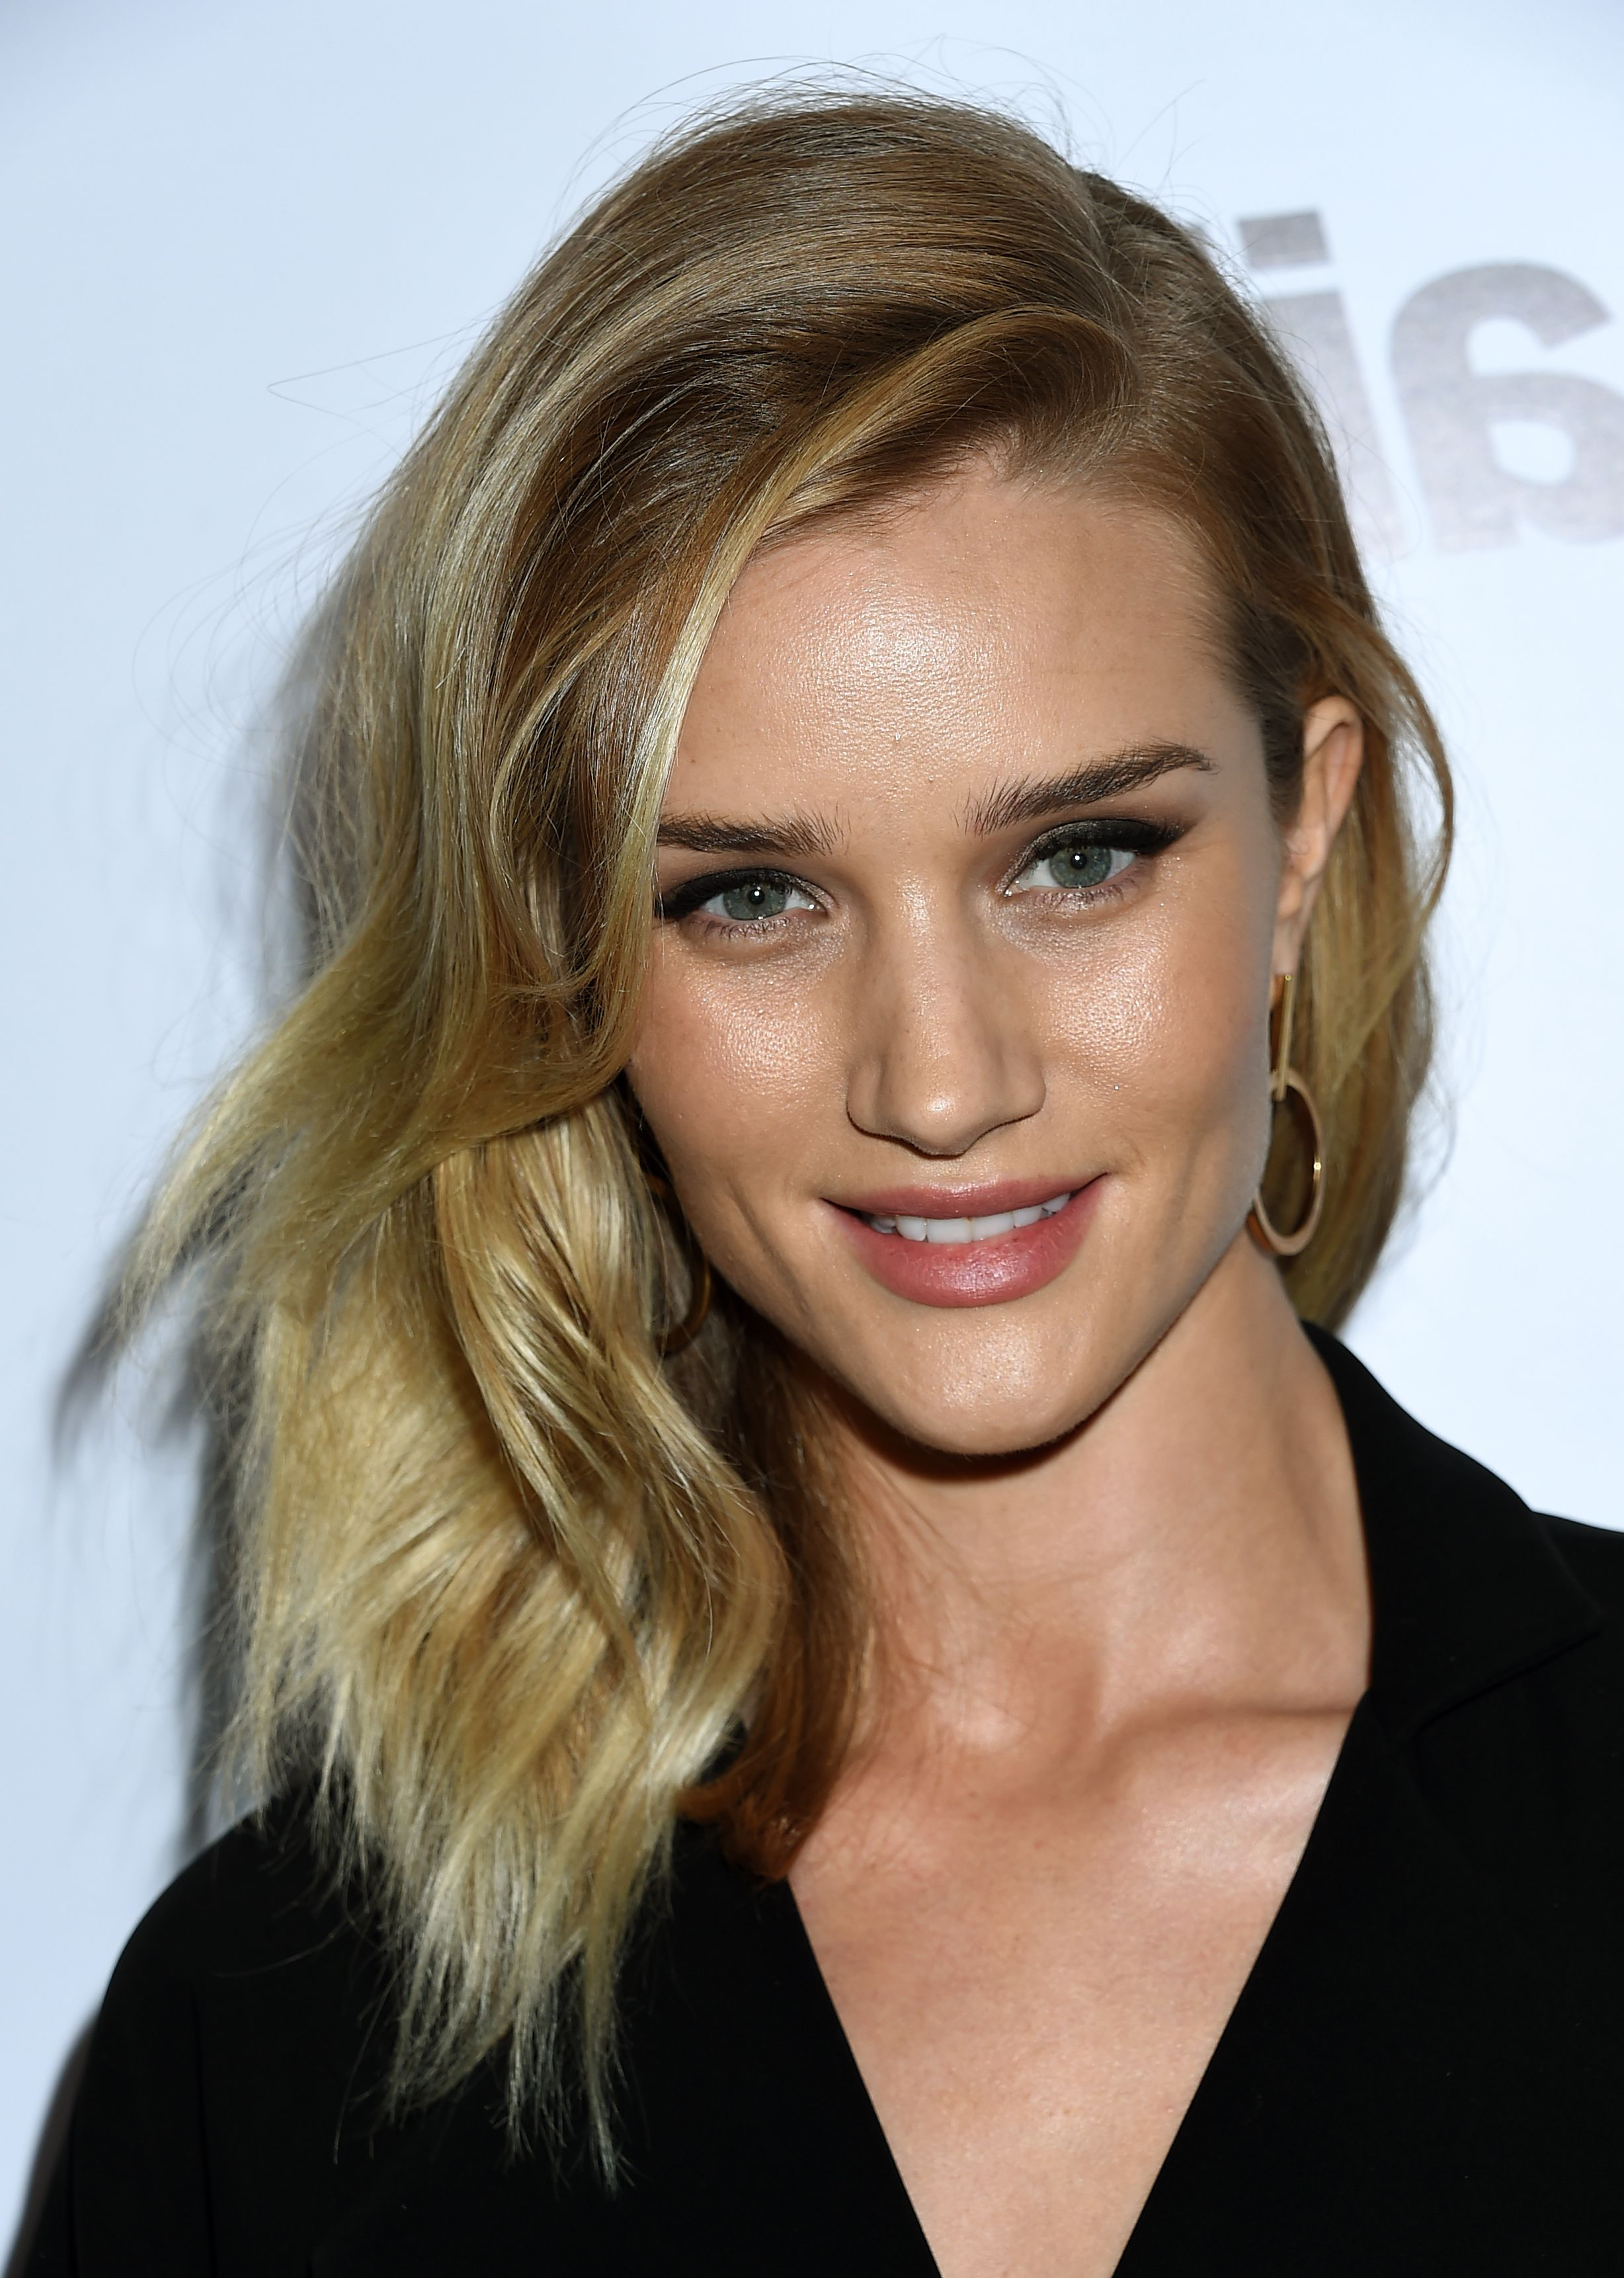 The 13 Best Hairstyles For Square Faces In Short Haircuts For Square Face (View 20 of 25)